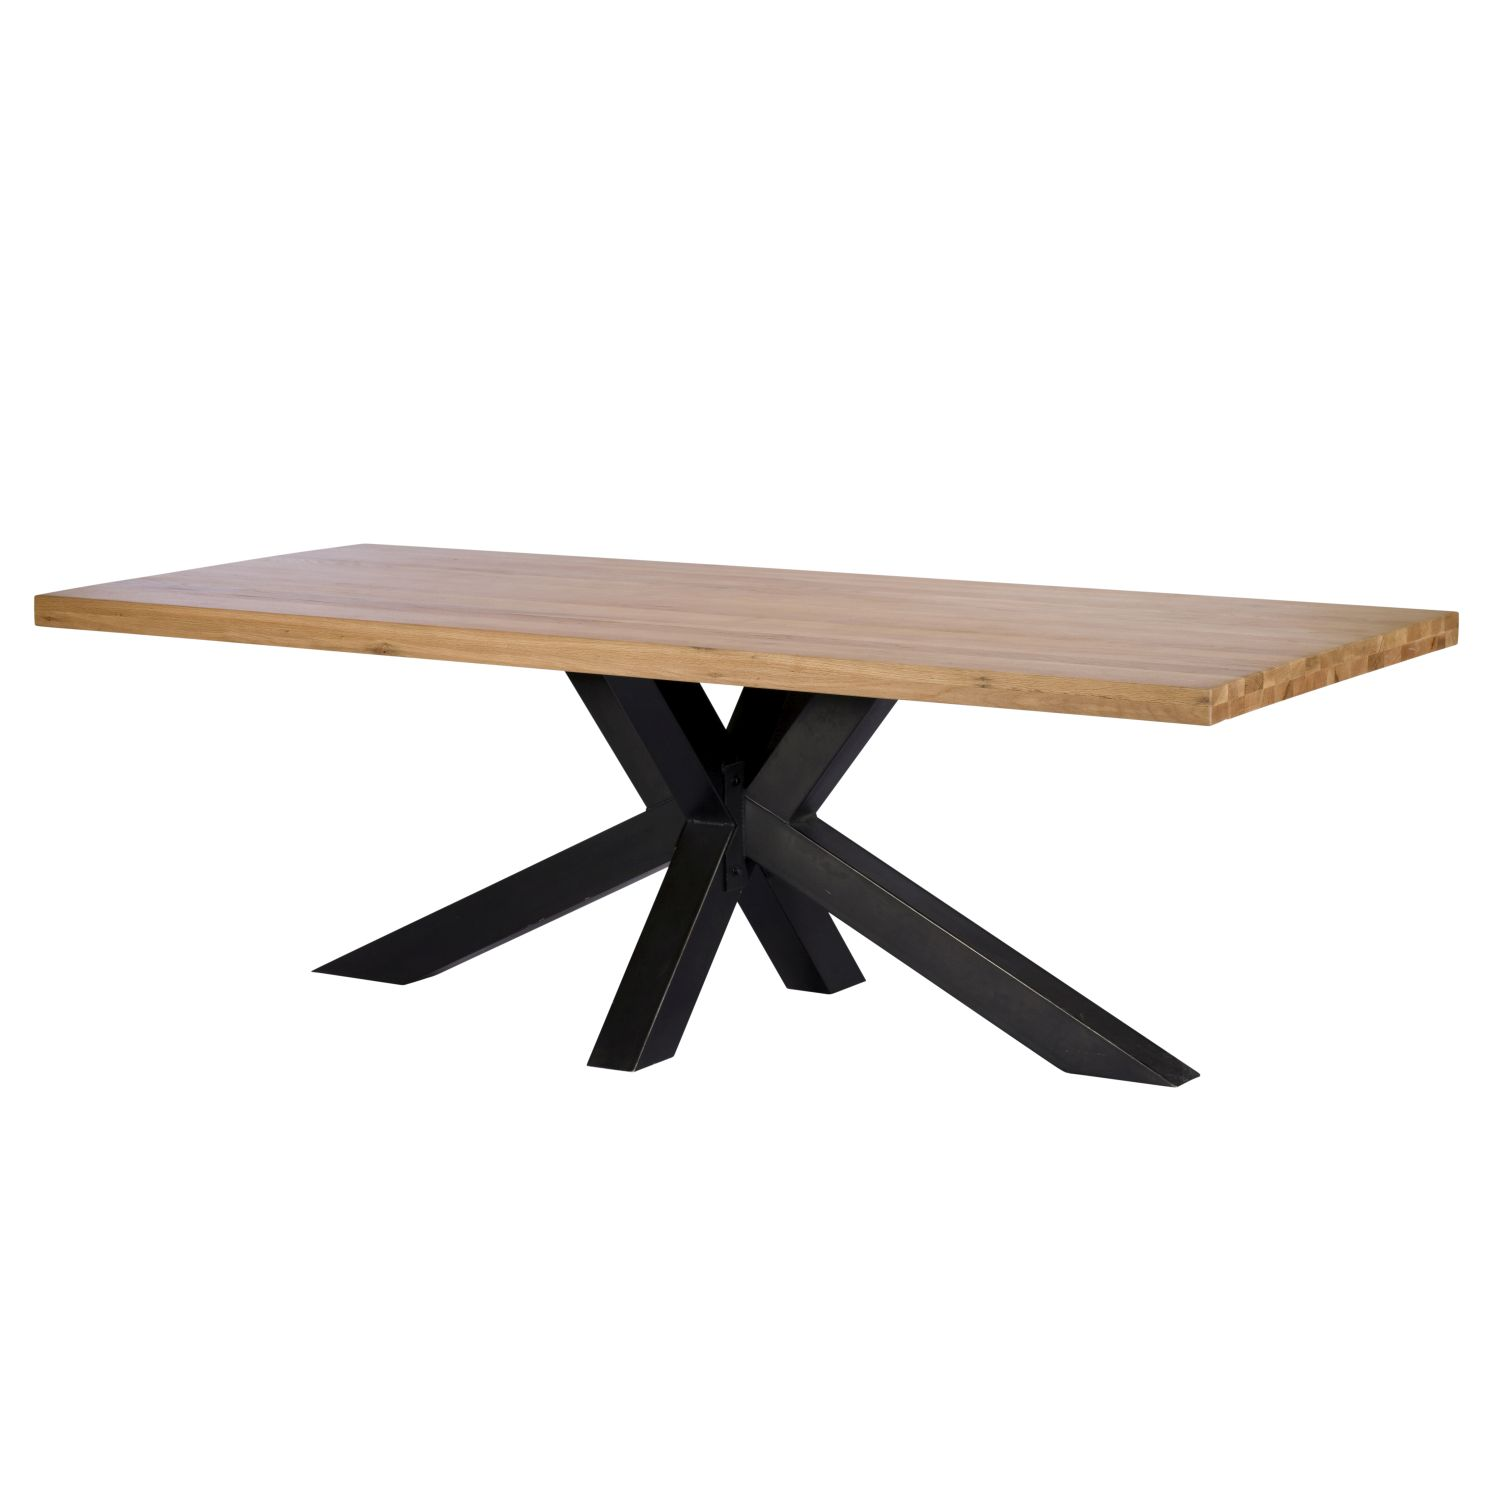 Image of Casa Balham 240cm Dining Table Table